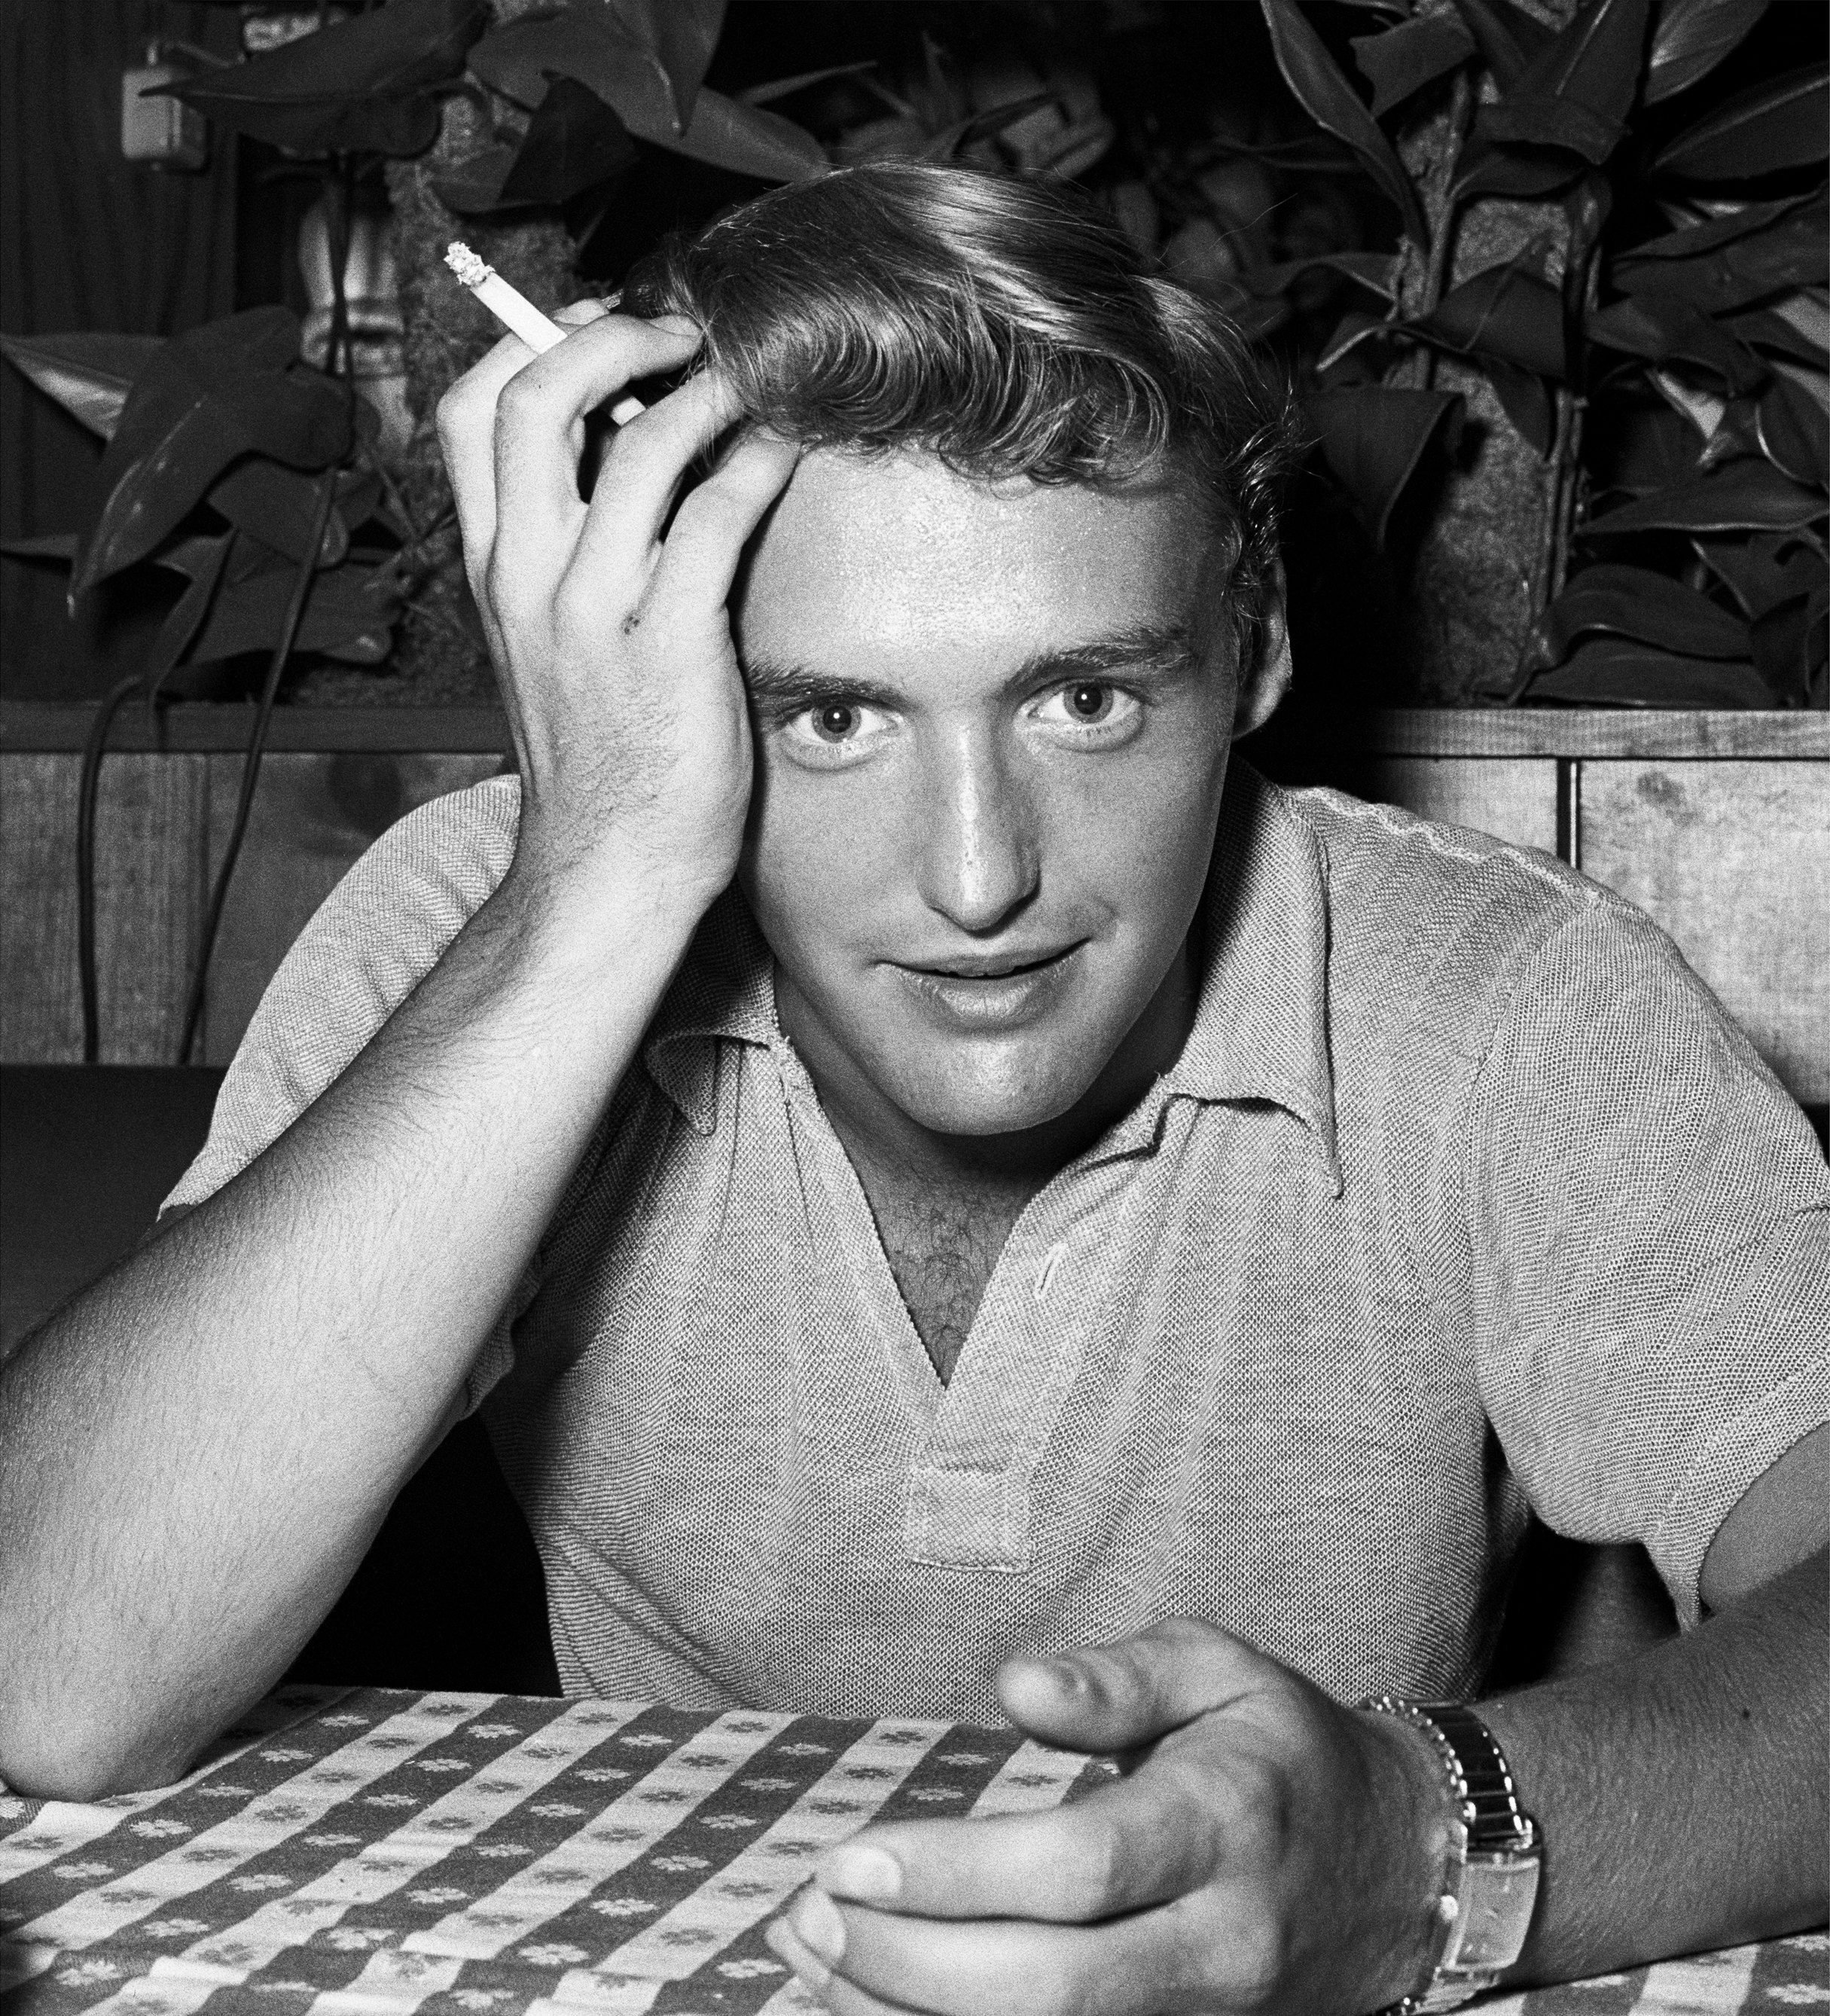 Dennis Hopper poses for a portrait at a restaurant in 1955. | Source: Getty Images